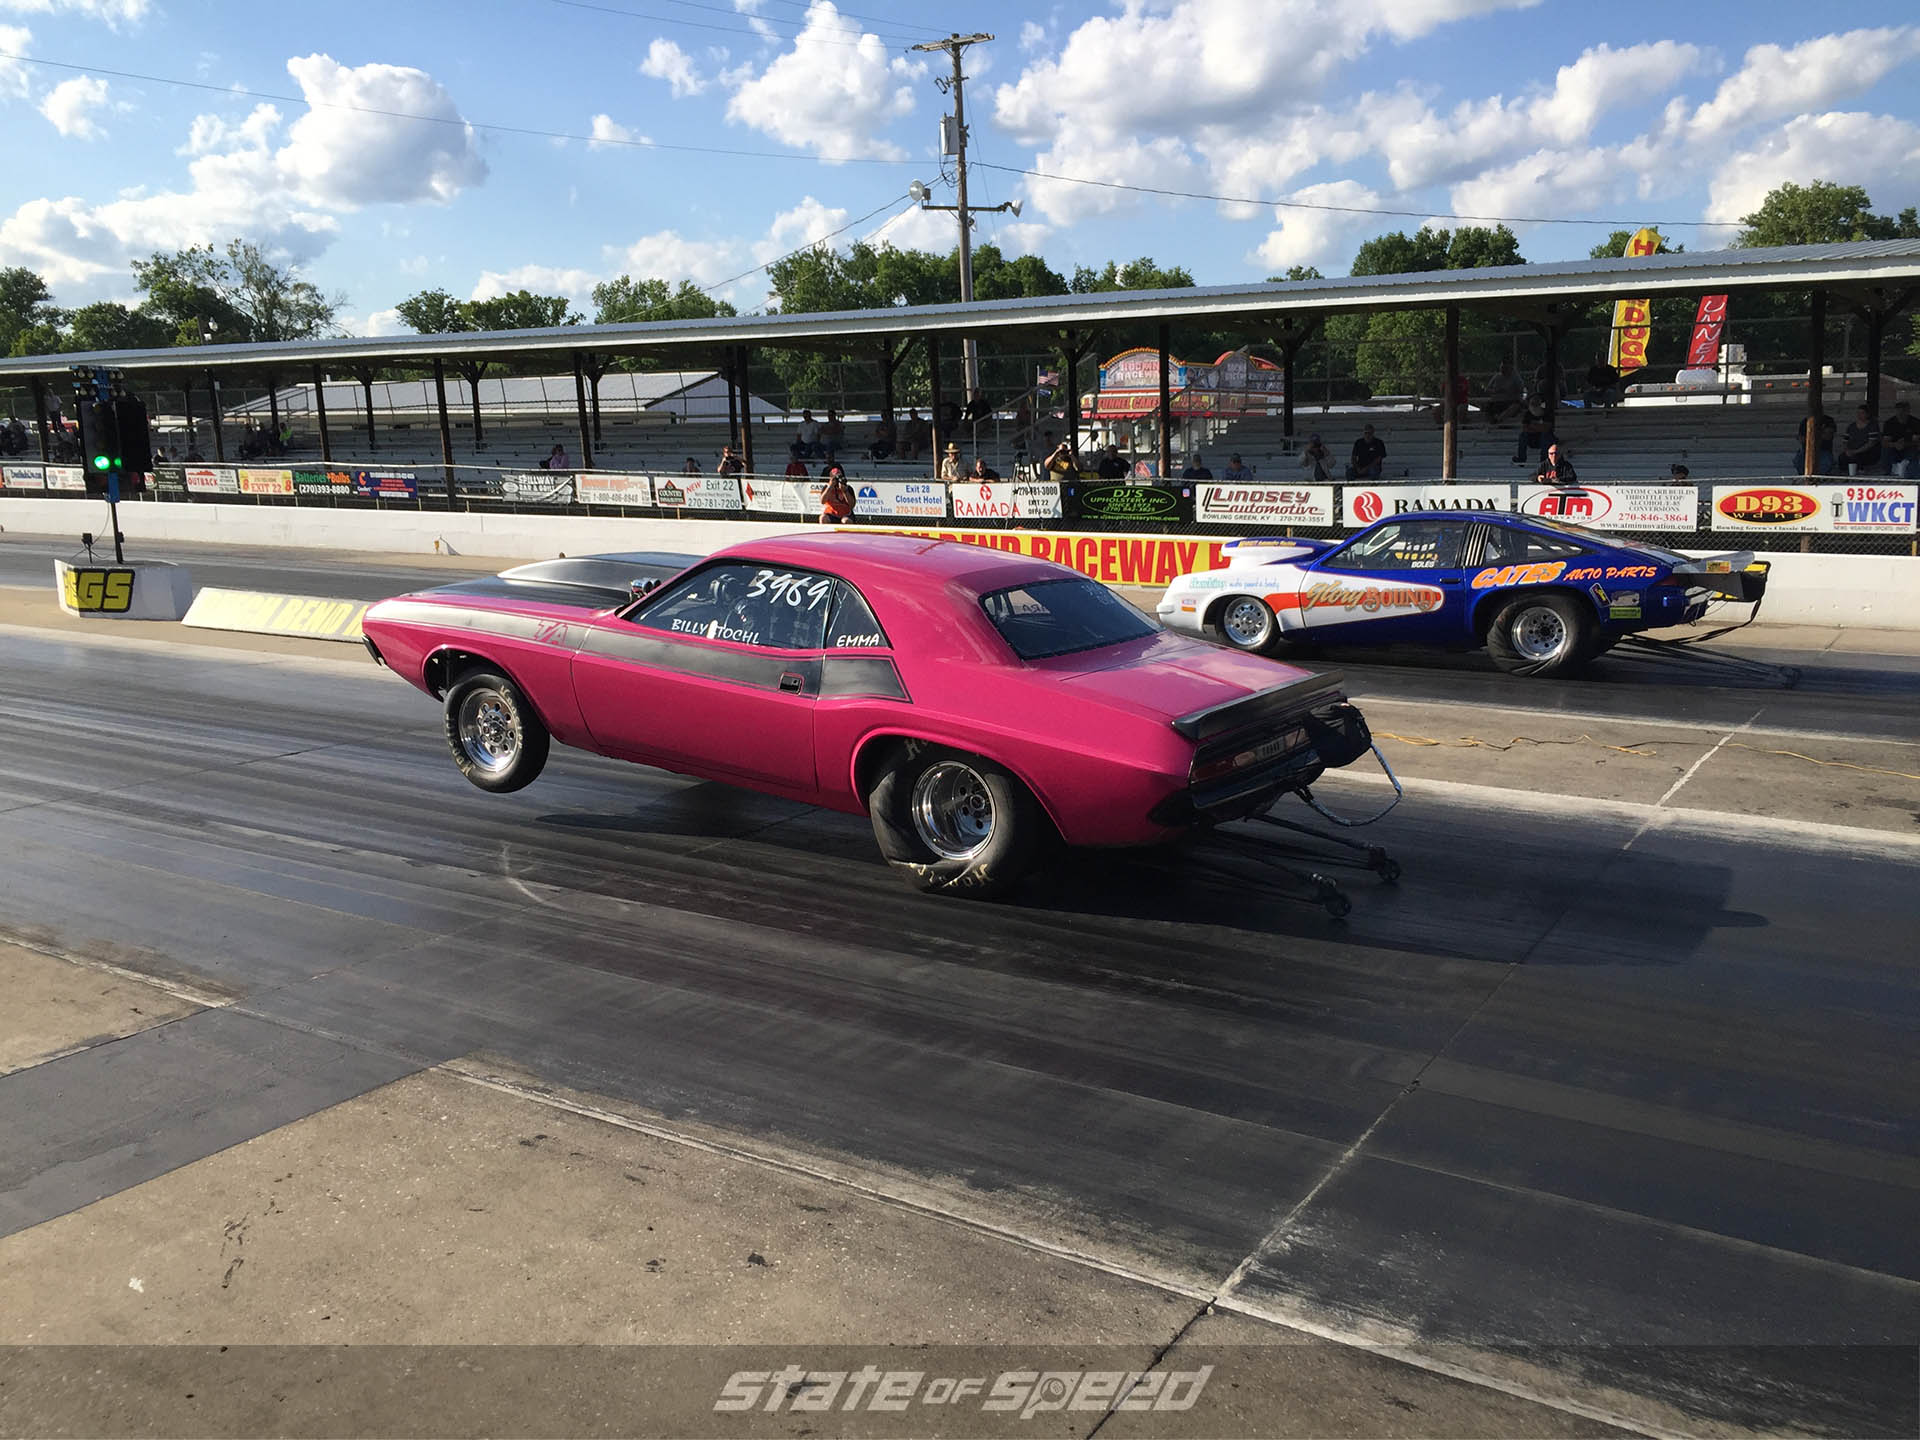 Dodge Challenger Dragstrip launch